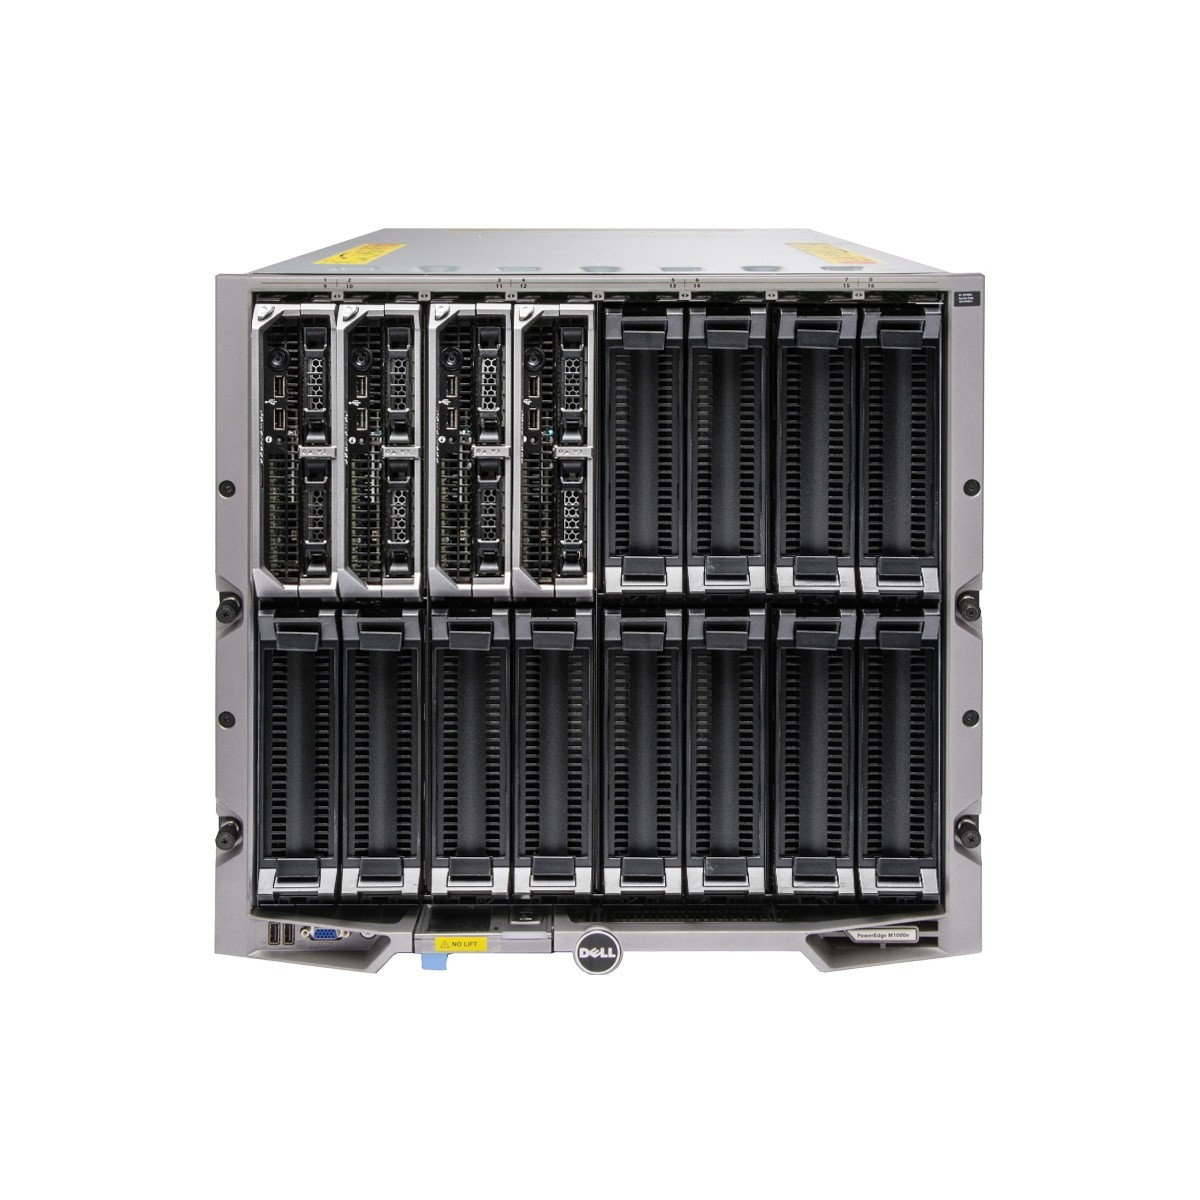 Dell PowerEdge M1000e Blade Enclosure with 4 x M620 Blades